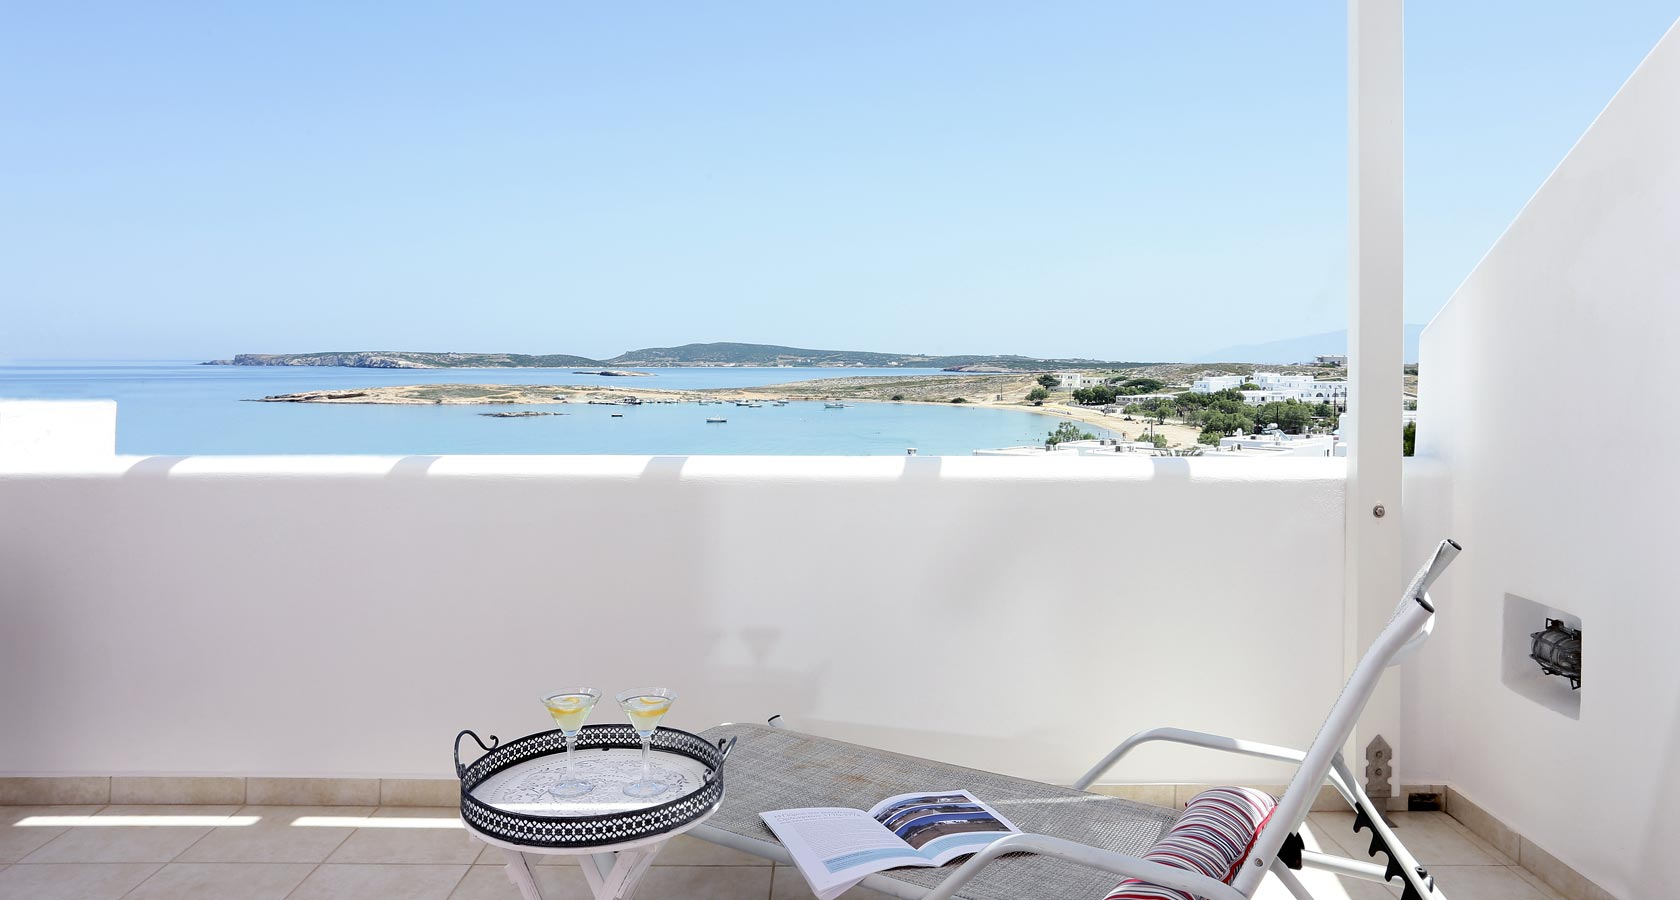 Sea view from a suite balcony in Naoussa Paros